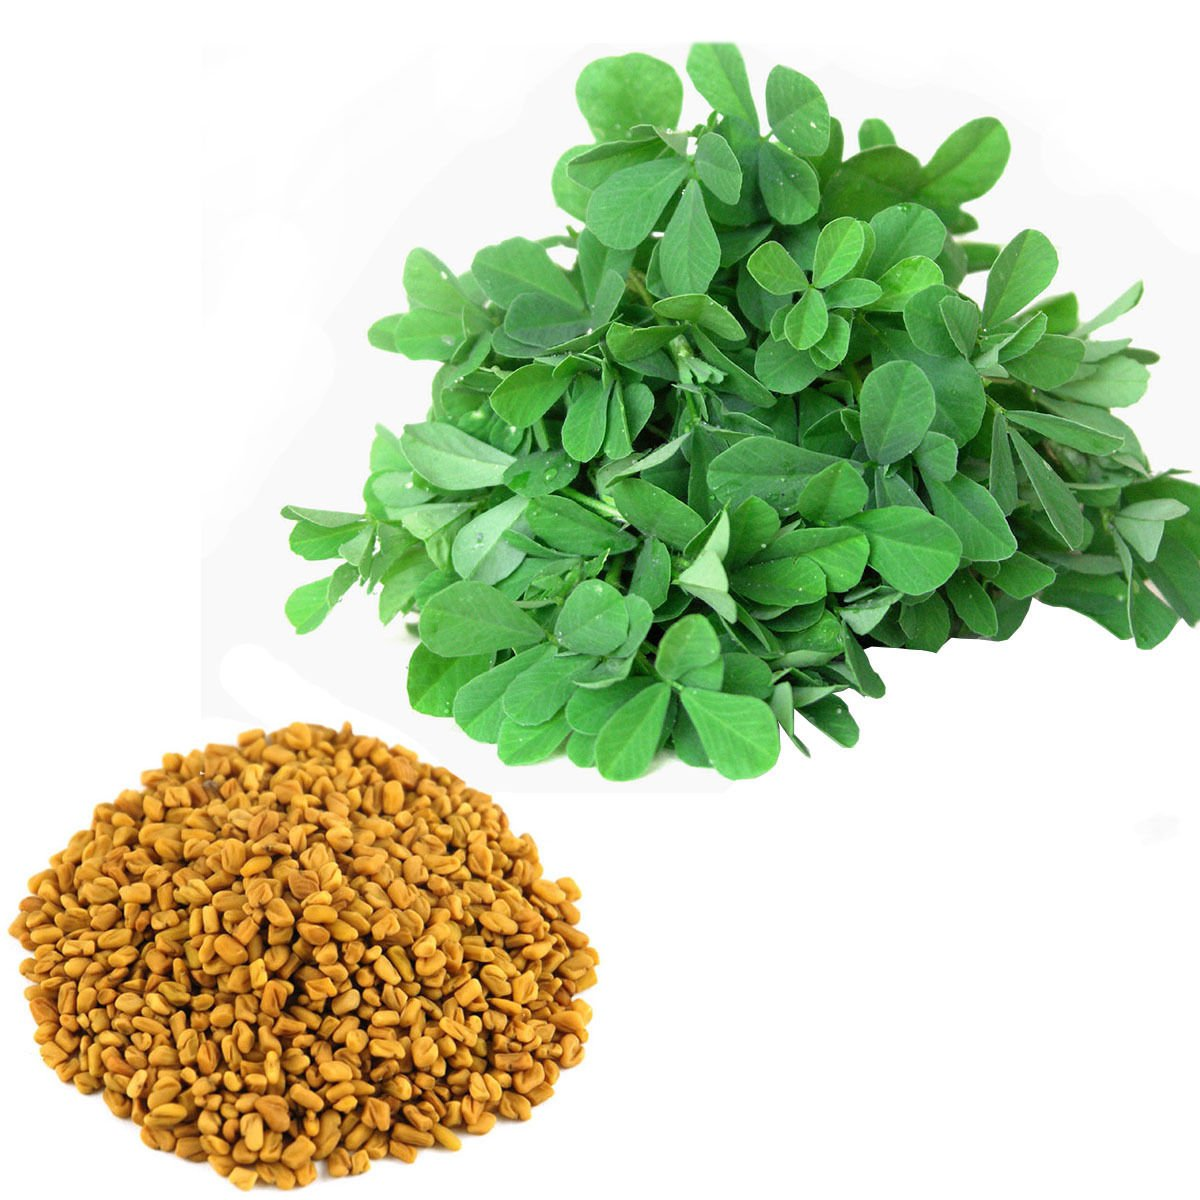 Fenugreek Trigonella foenum-graecum 300+ seeds * Spice * Herb * *SHIPPING FROM US* CombSH B76